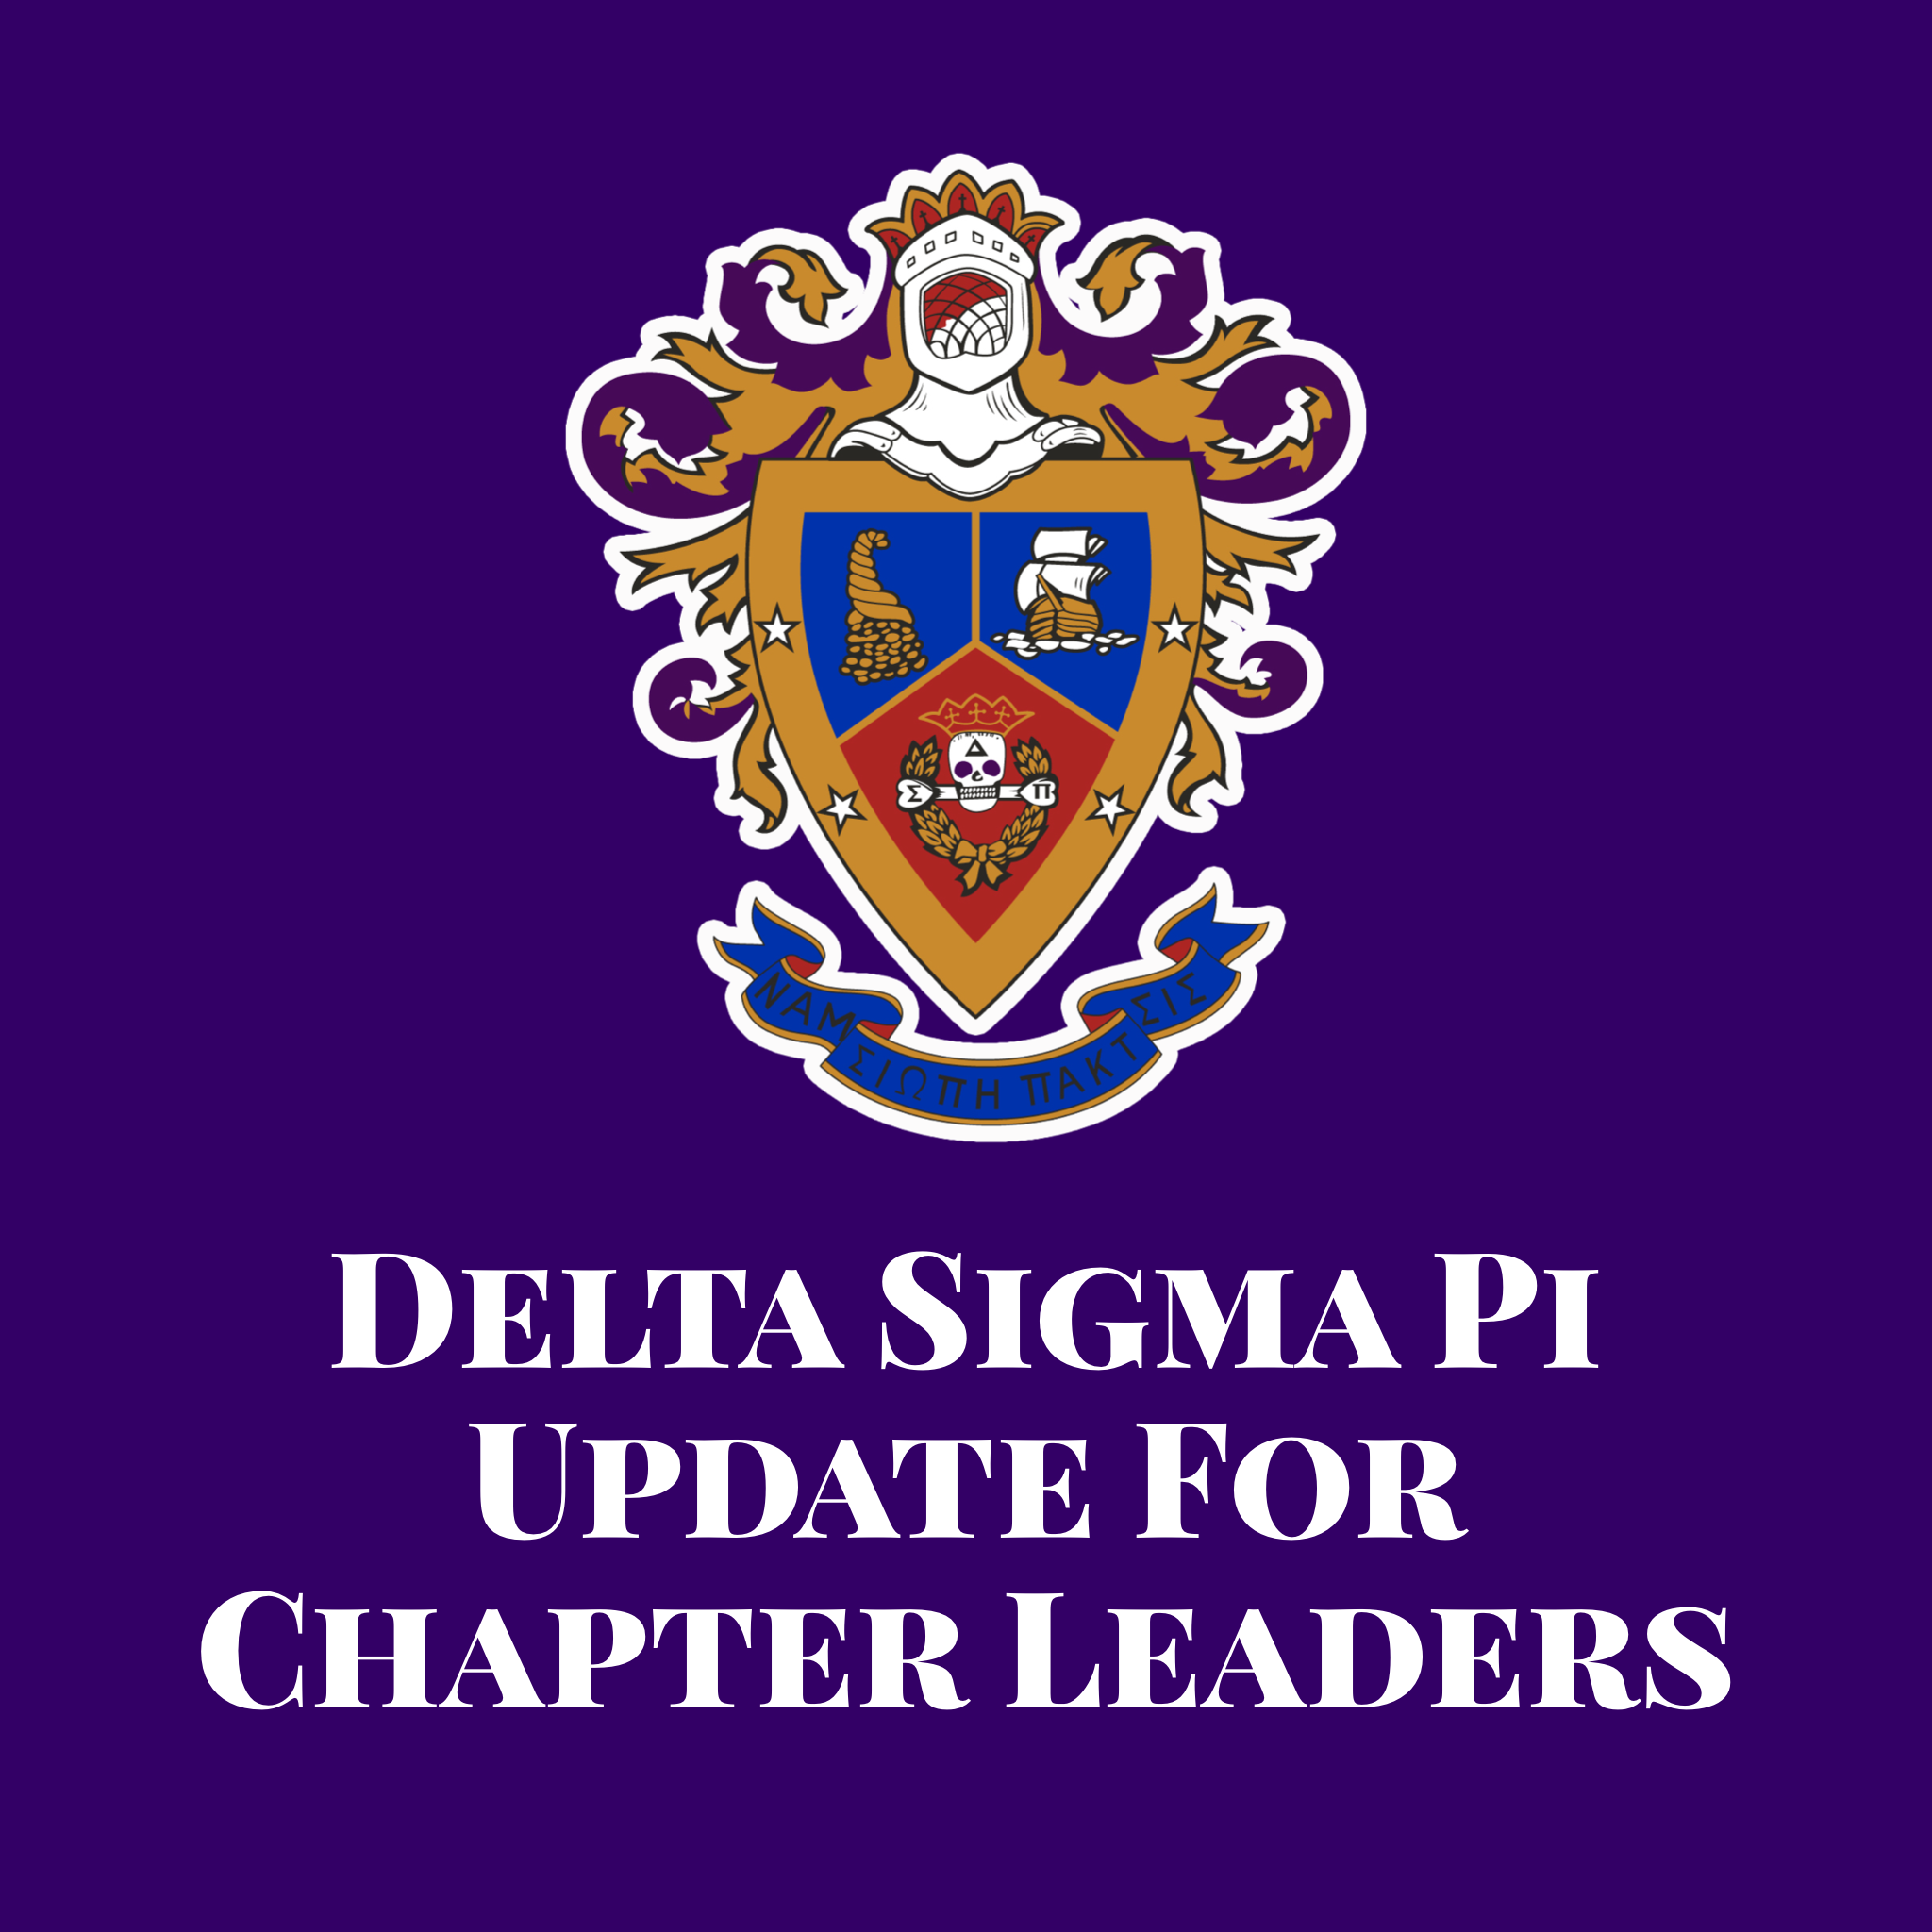 Update for Chapter Leaders